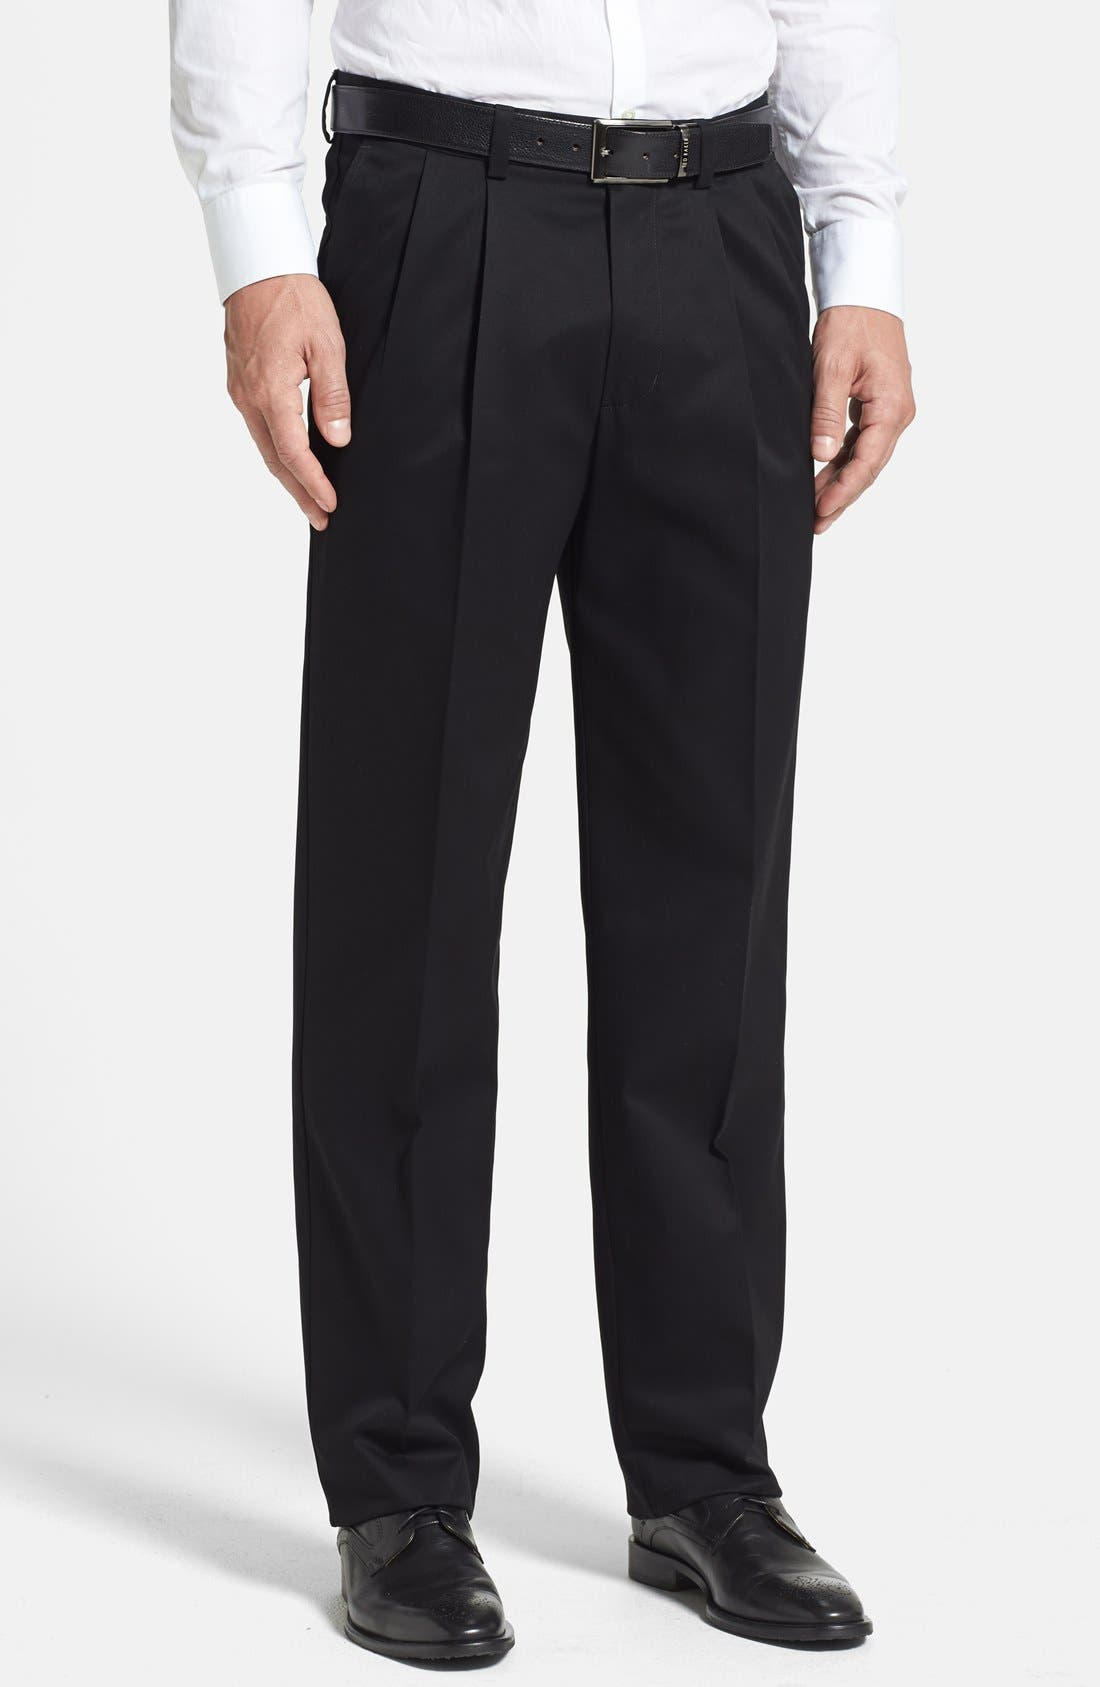 Nordstrom Men's Shop 'Classic' Smartcare™ Relaxed Fit Double Pleated Cotton Pants (Online Only)